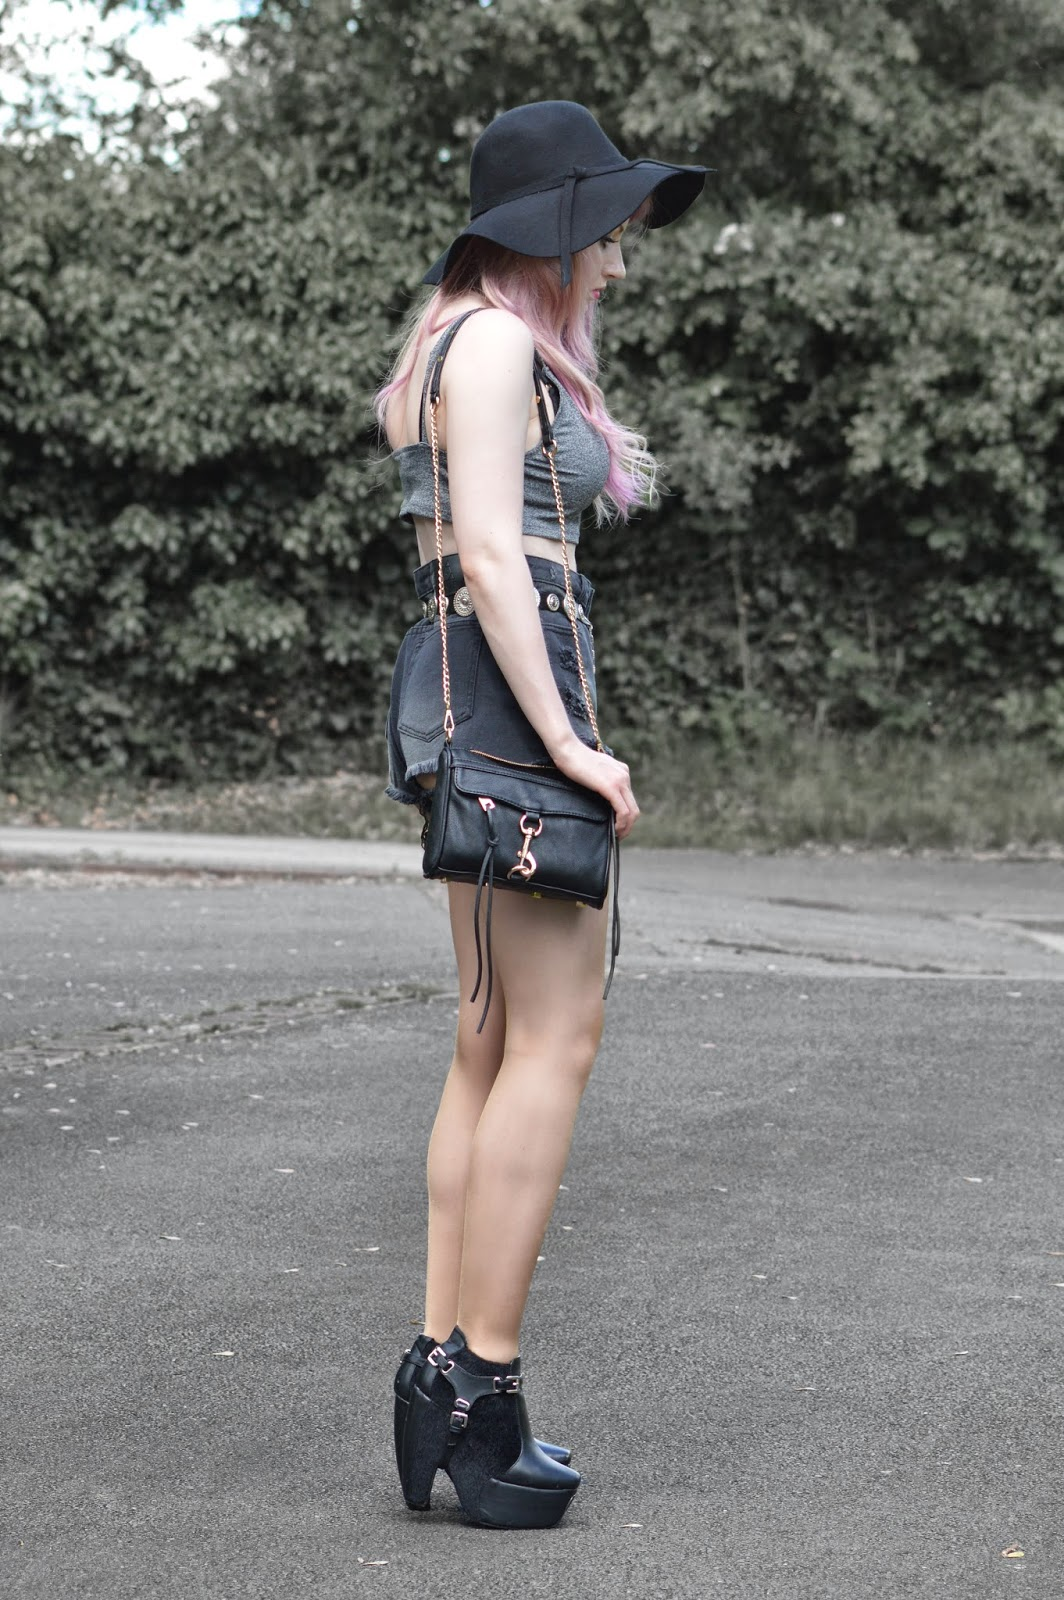 Sammi Jackson - 2 Ways To Wear Unif Hangover Shorts // Look 2